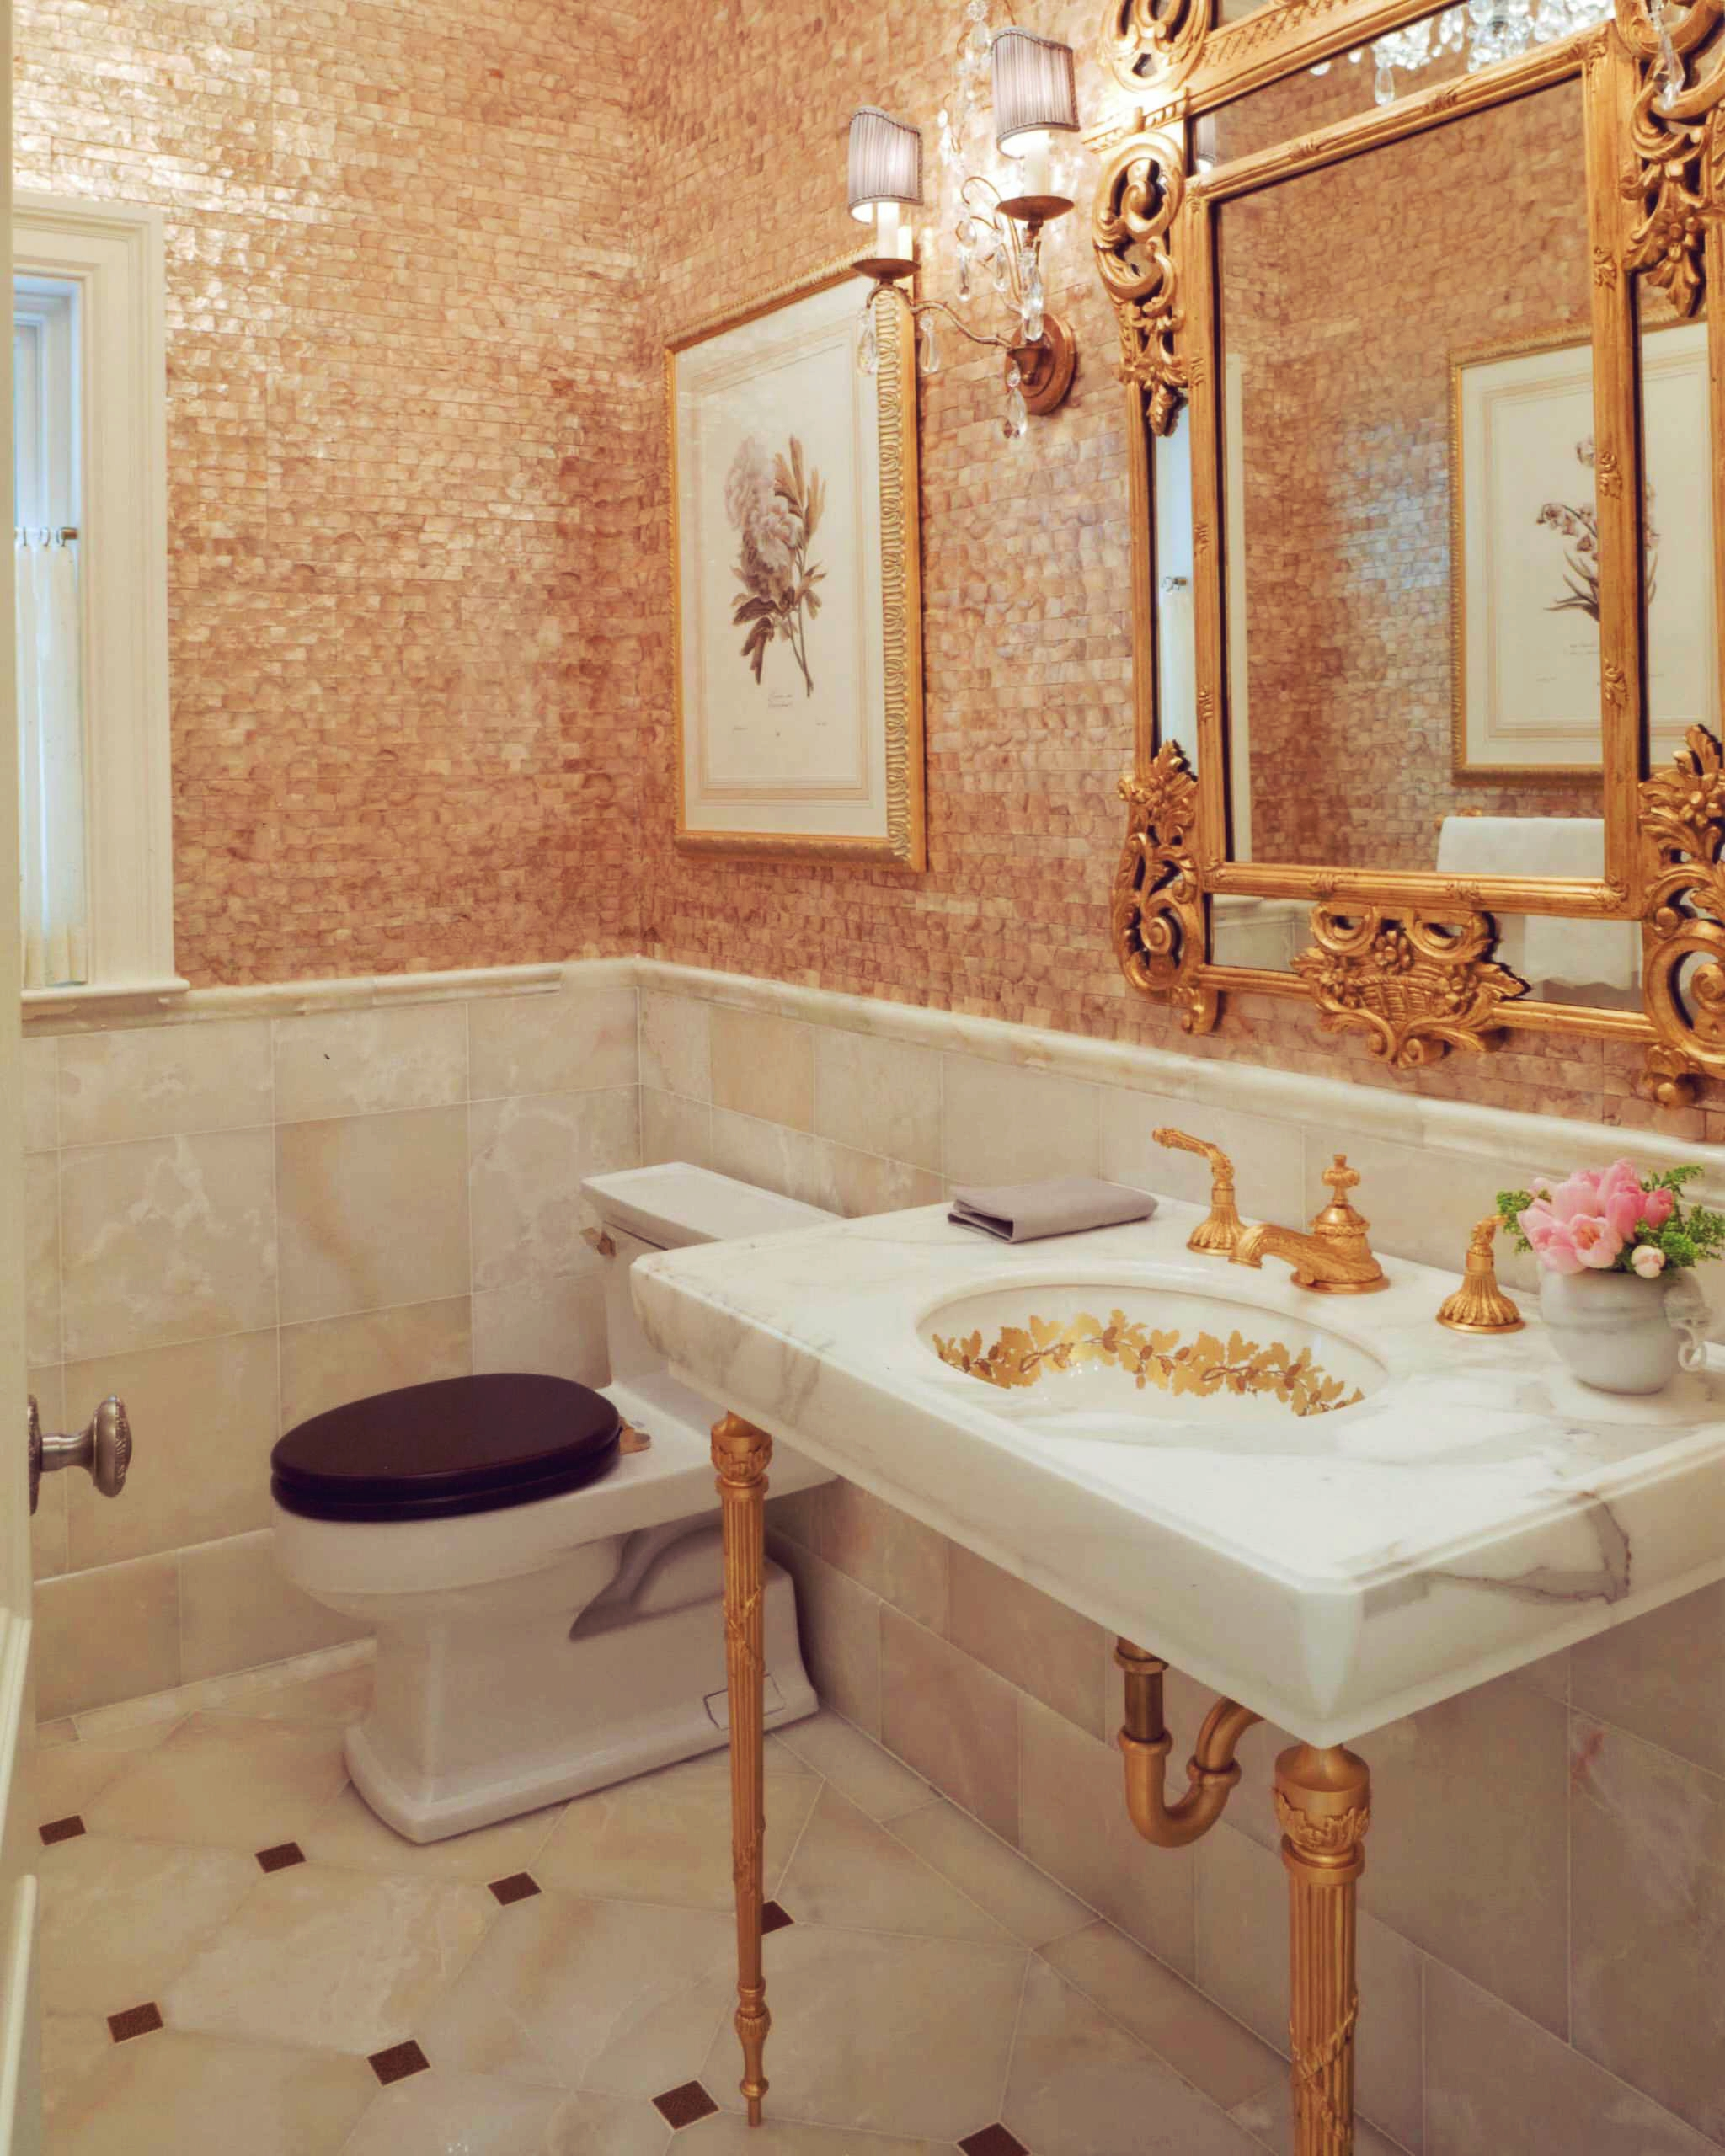 traditional-powder-roomversaillesbathroomgoldgraniteonyxvanityunder-mountedsinkplatedtilesbacksplashgiltfreestandingsinksupperlegsvanitymirrorstonewallsmarble